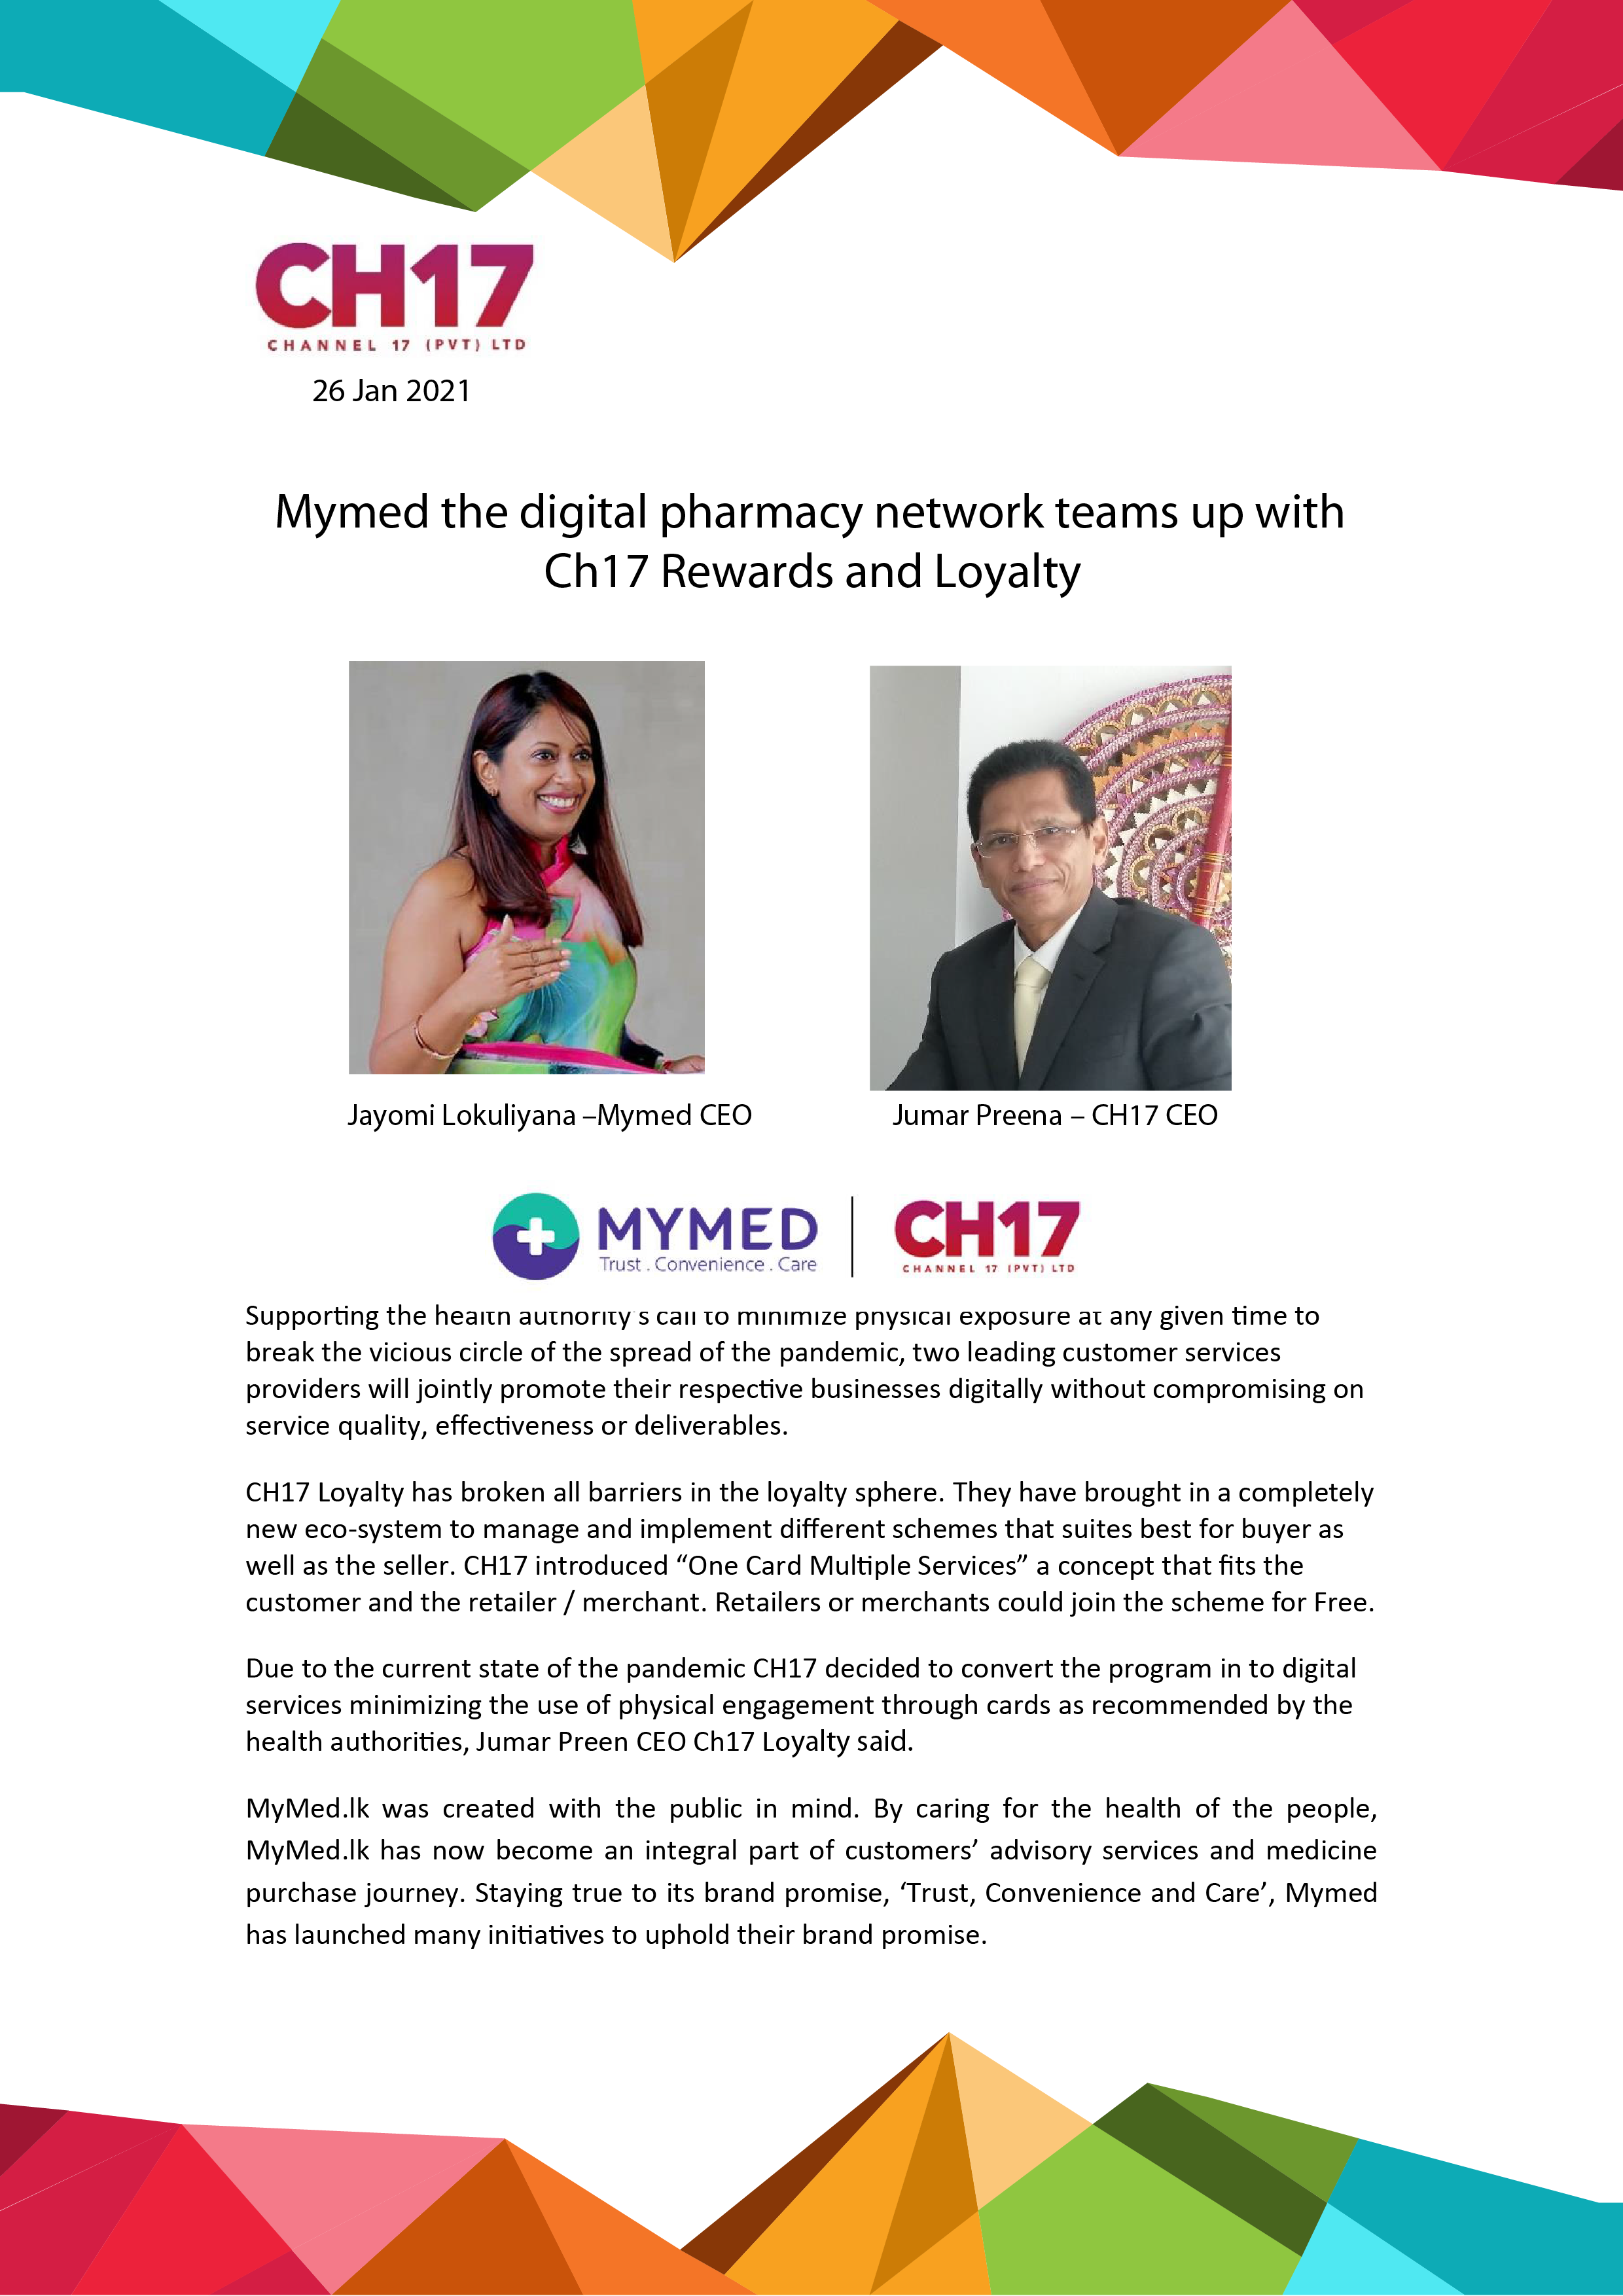 MYMED the digital pharmacy network teams up with CH17 Rewards & Loyalty